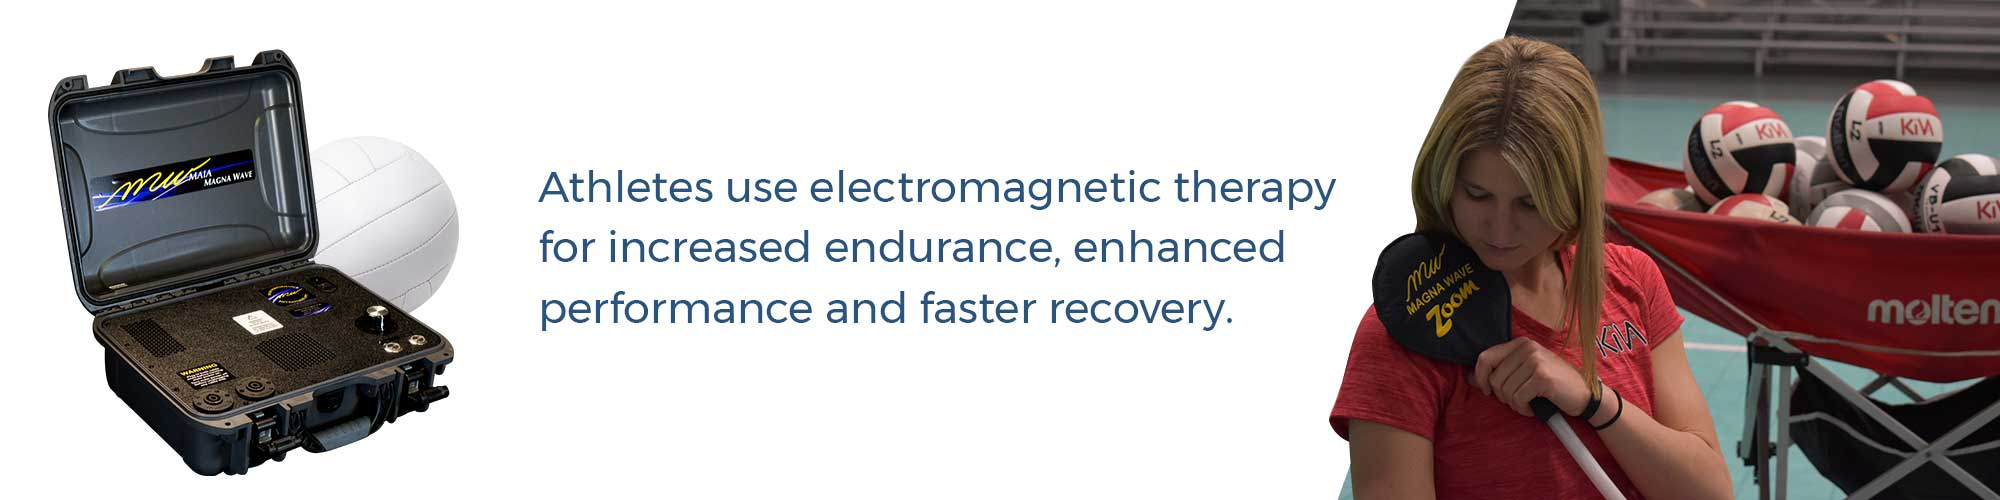 Athletes use electromagnetic therapy for increased endurance, enhanced performance and faster recovery.